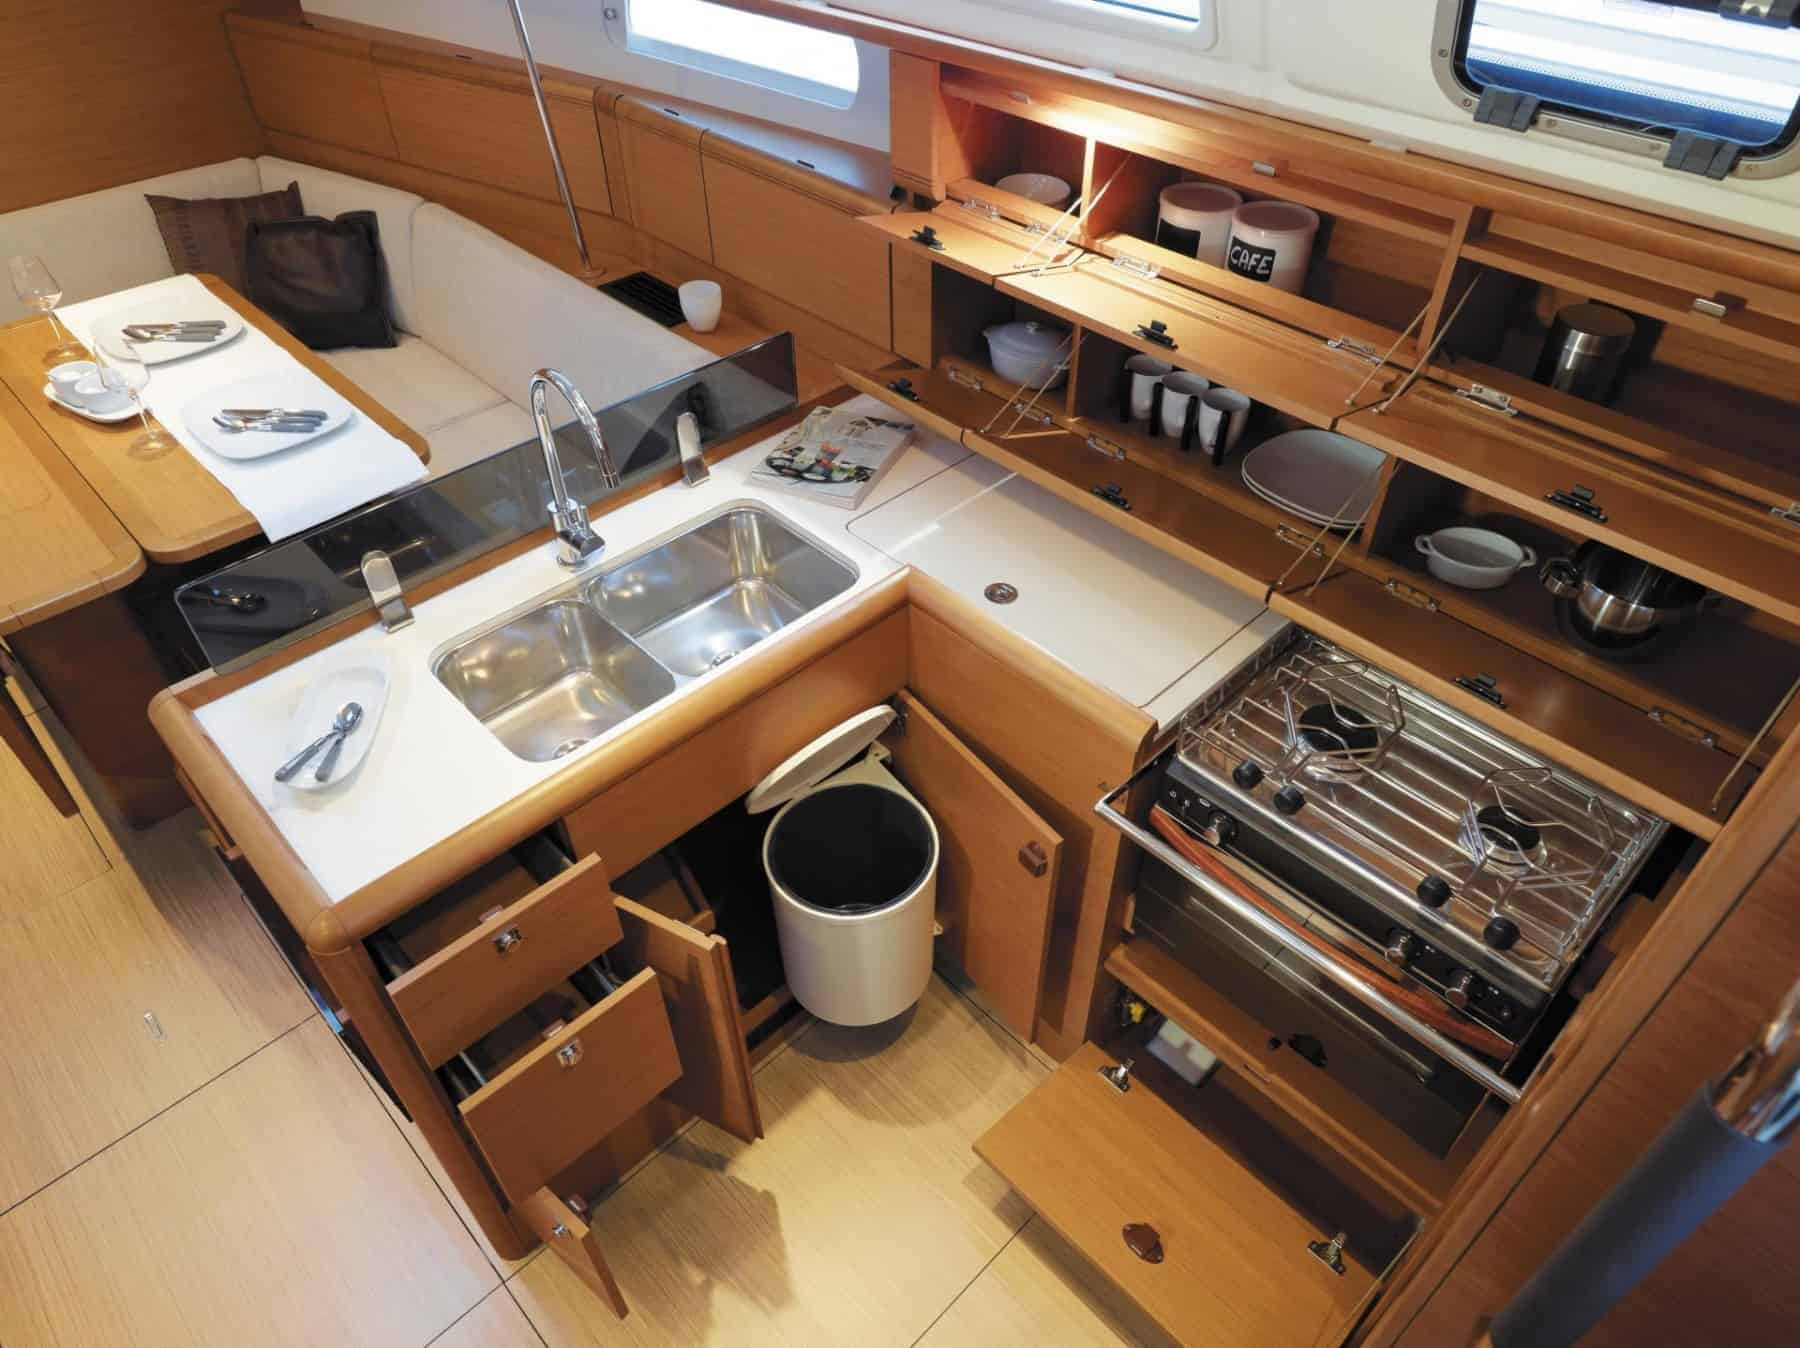 The neat galley of Jeanneau Sun Odyssey 389 with great storage possibilities